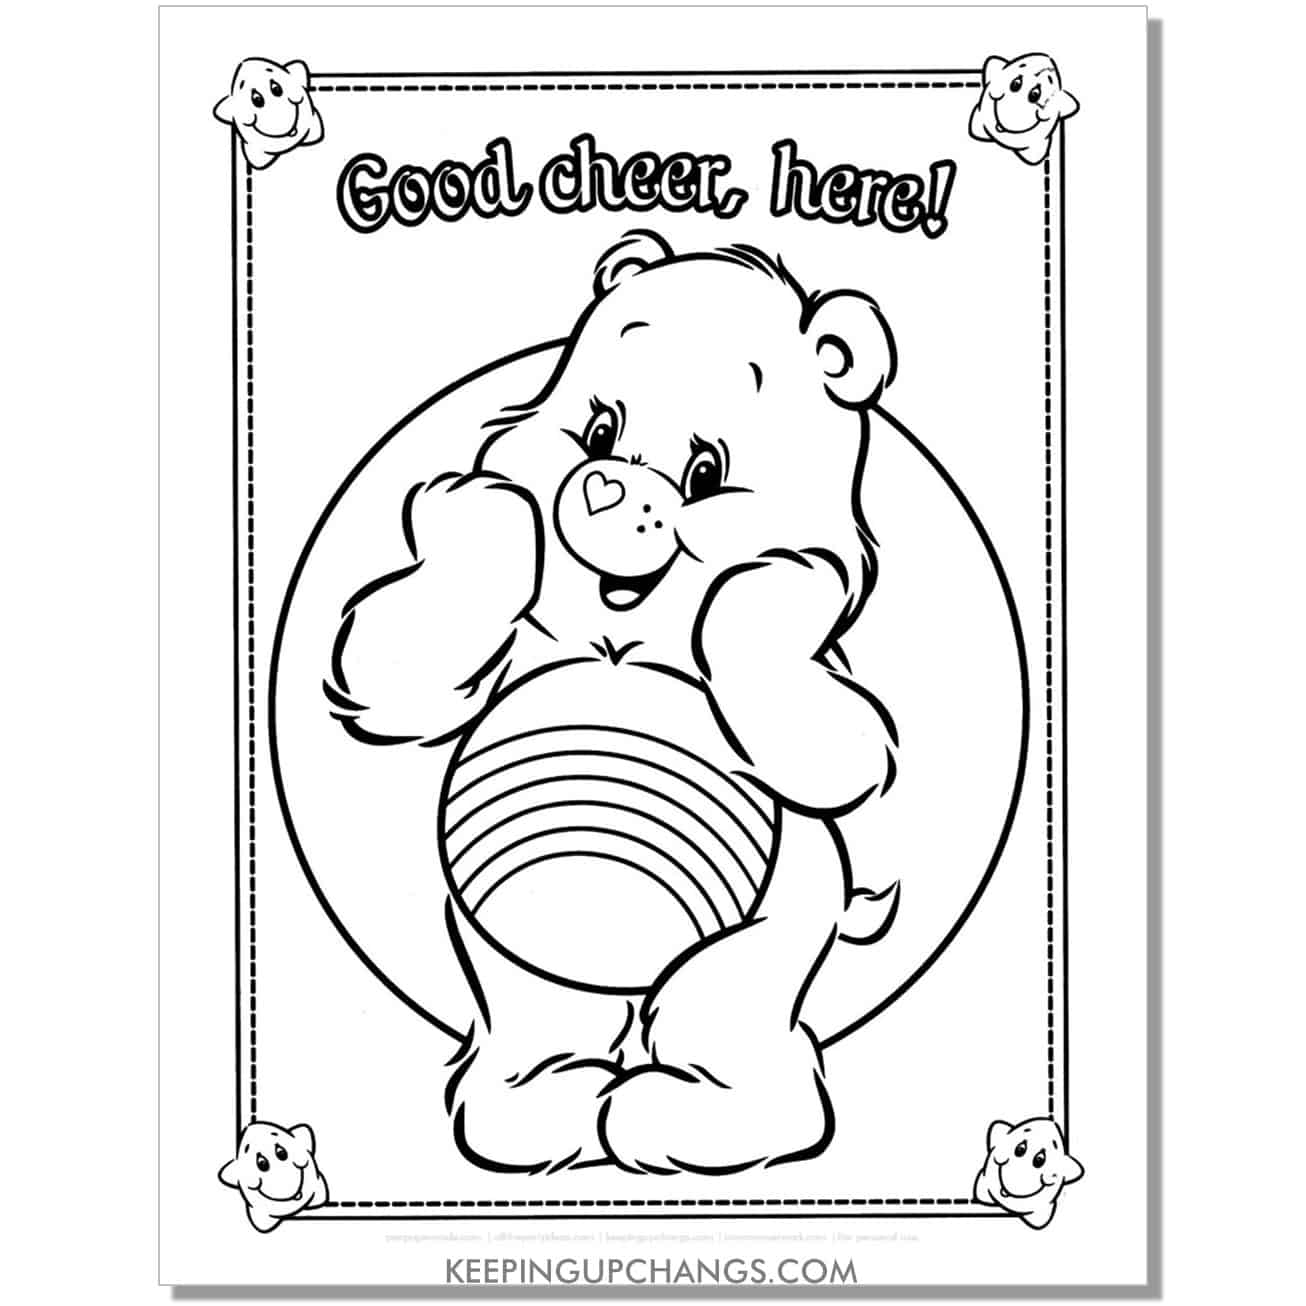 cheer care bear coloring page.